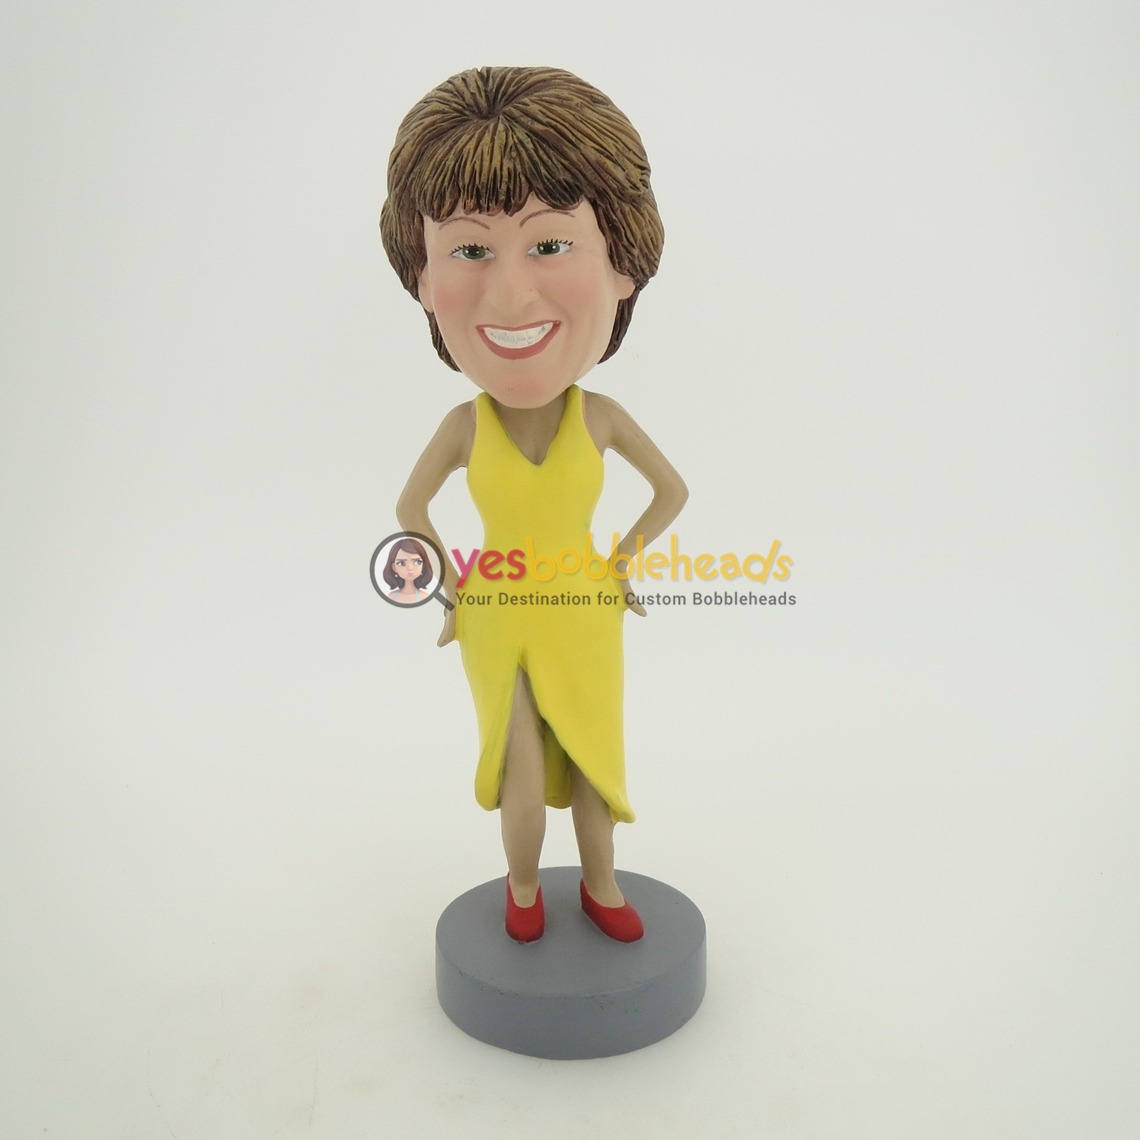 Picture of Custom Bobblehead Doll: Yellow Dress Woman